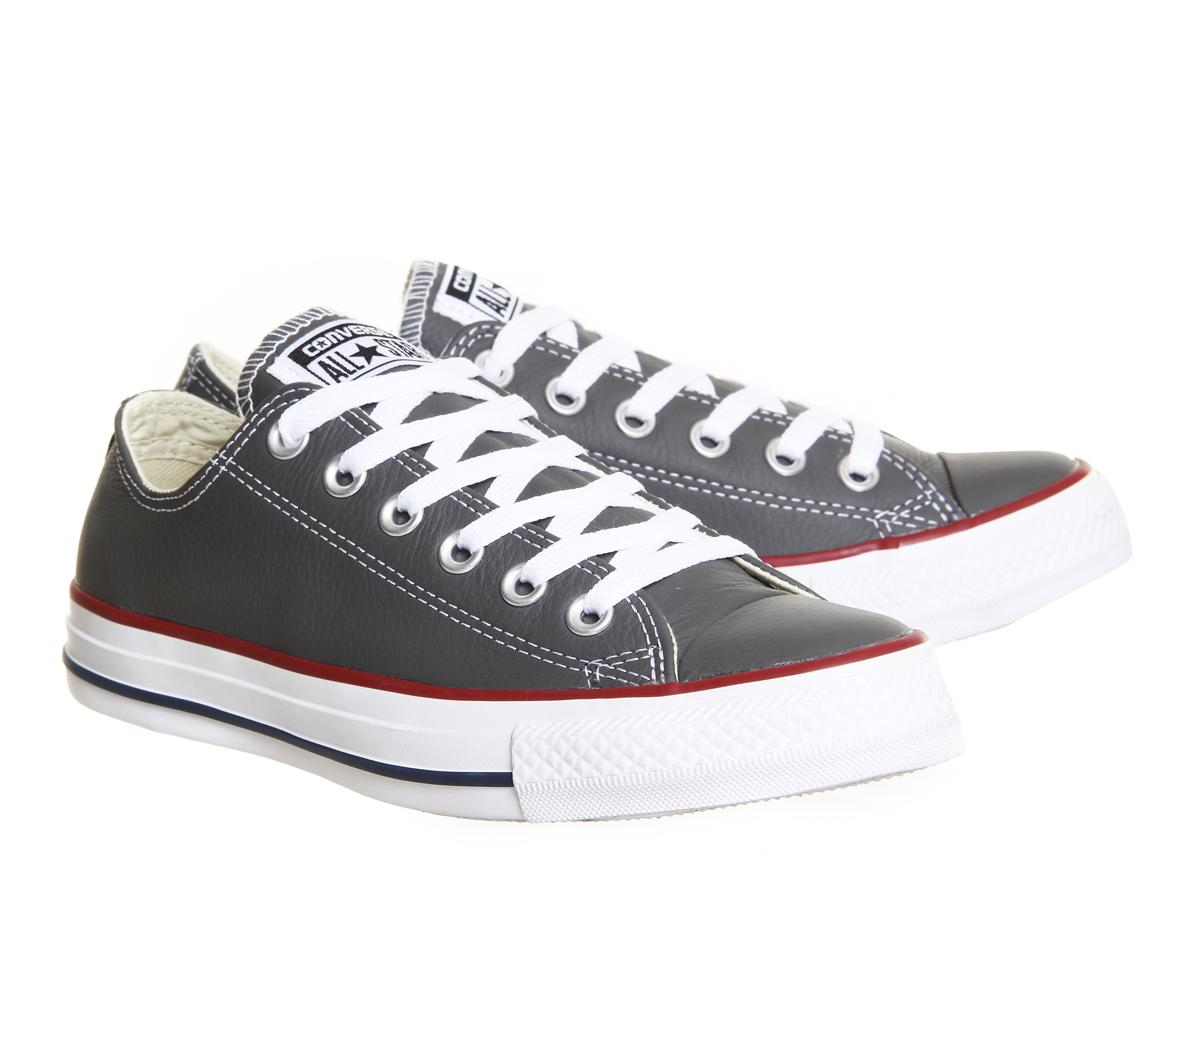 964116e07b62fb Converse All Star Low Leather in Gray